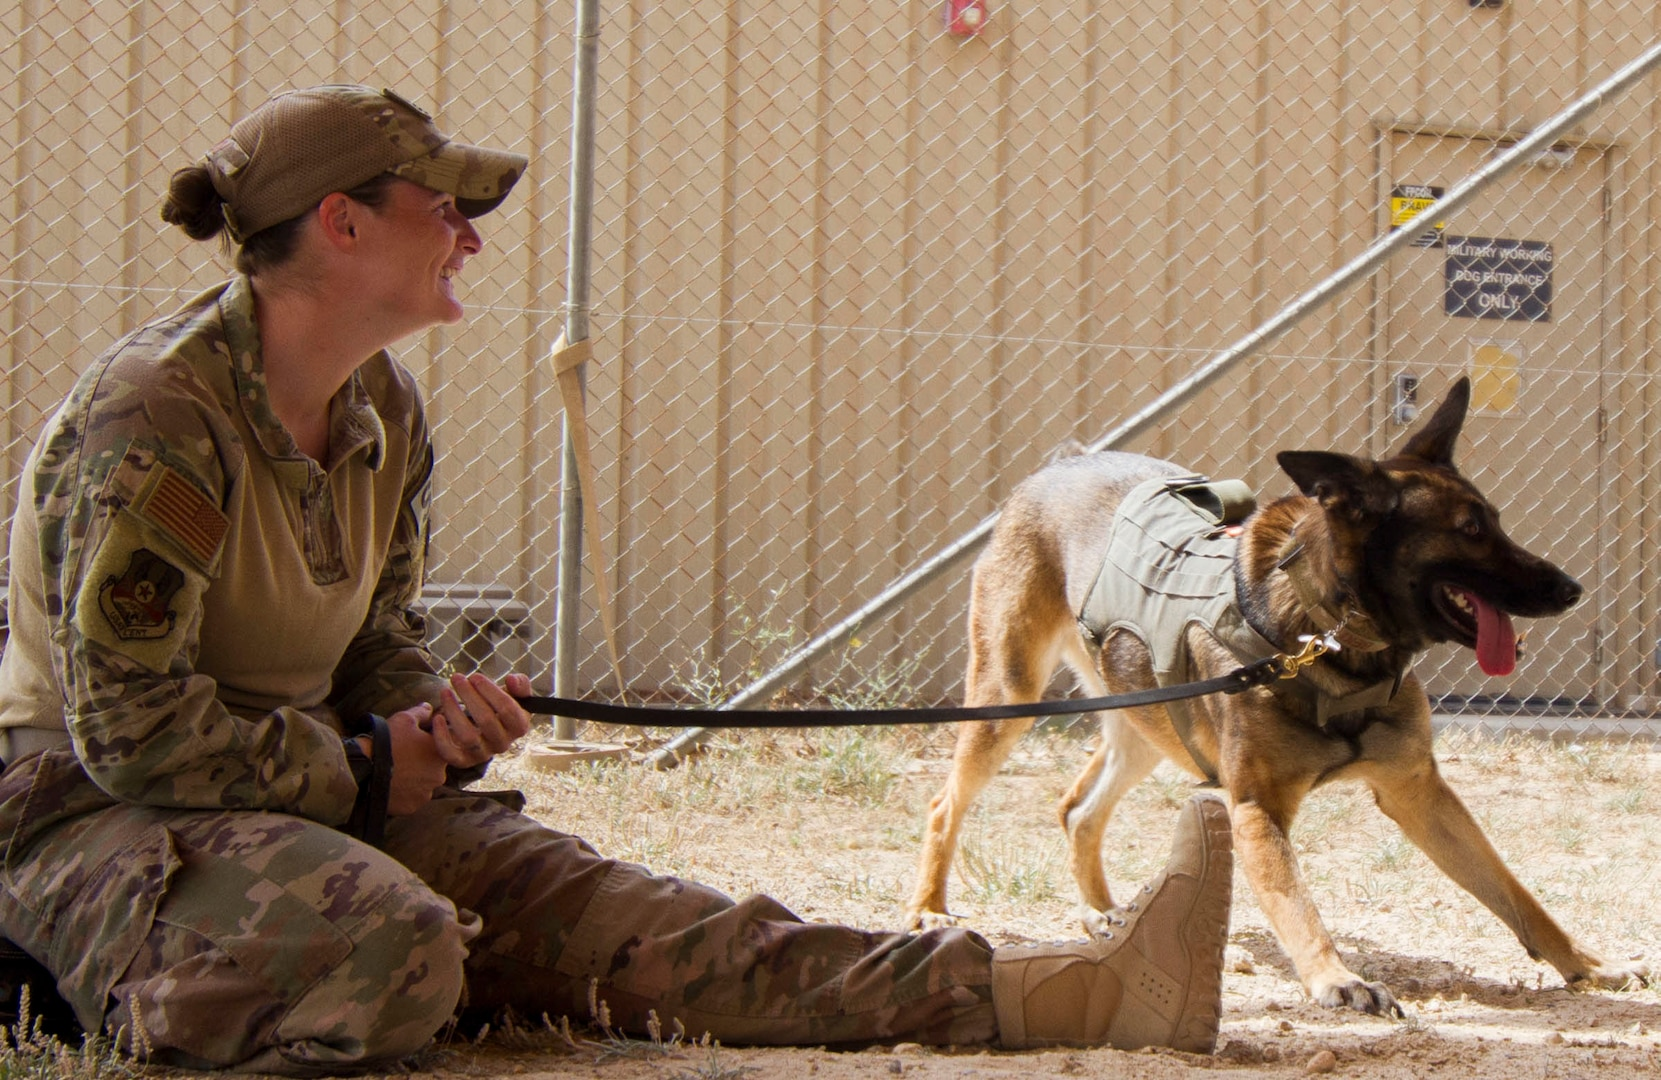 Air Force Staff Sgt. Porschia Easom, military working dog handler, 386th Expeditionary Security Forces Squadron, plays with her military working dog, Beki, a Belgian Malinois that does bite work and finds explosives, in preparation to conduct chemical, biological, chemical, or nuclear (CBRN) decontamination training in Kuwait April 11, 2019. Members of the 637th Chemical Company, the 719th Medical Detachment Veterinary Service Support, and the 386th Expeditionary Security Forces Squadron came together to conduct a live exercise to train to save the lives of military working dogs and their handlers in the event they were exposed to a CBRN substance. Live training events help prepare service members for real world events which may require them to recall the skills they learned in training to stay in the fight and survive.